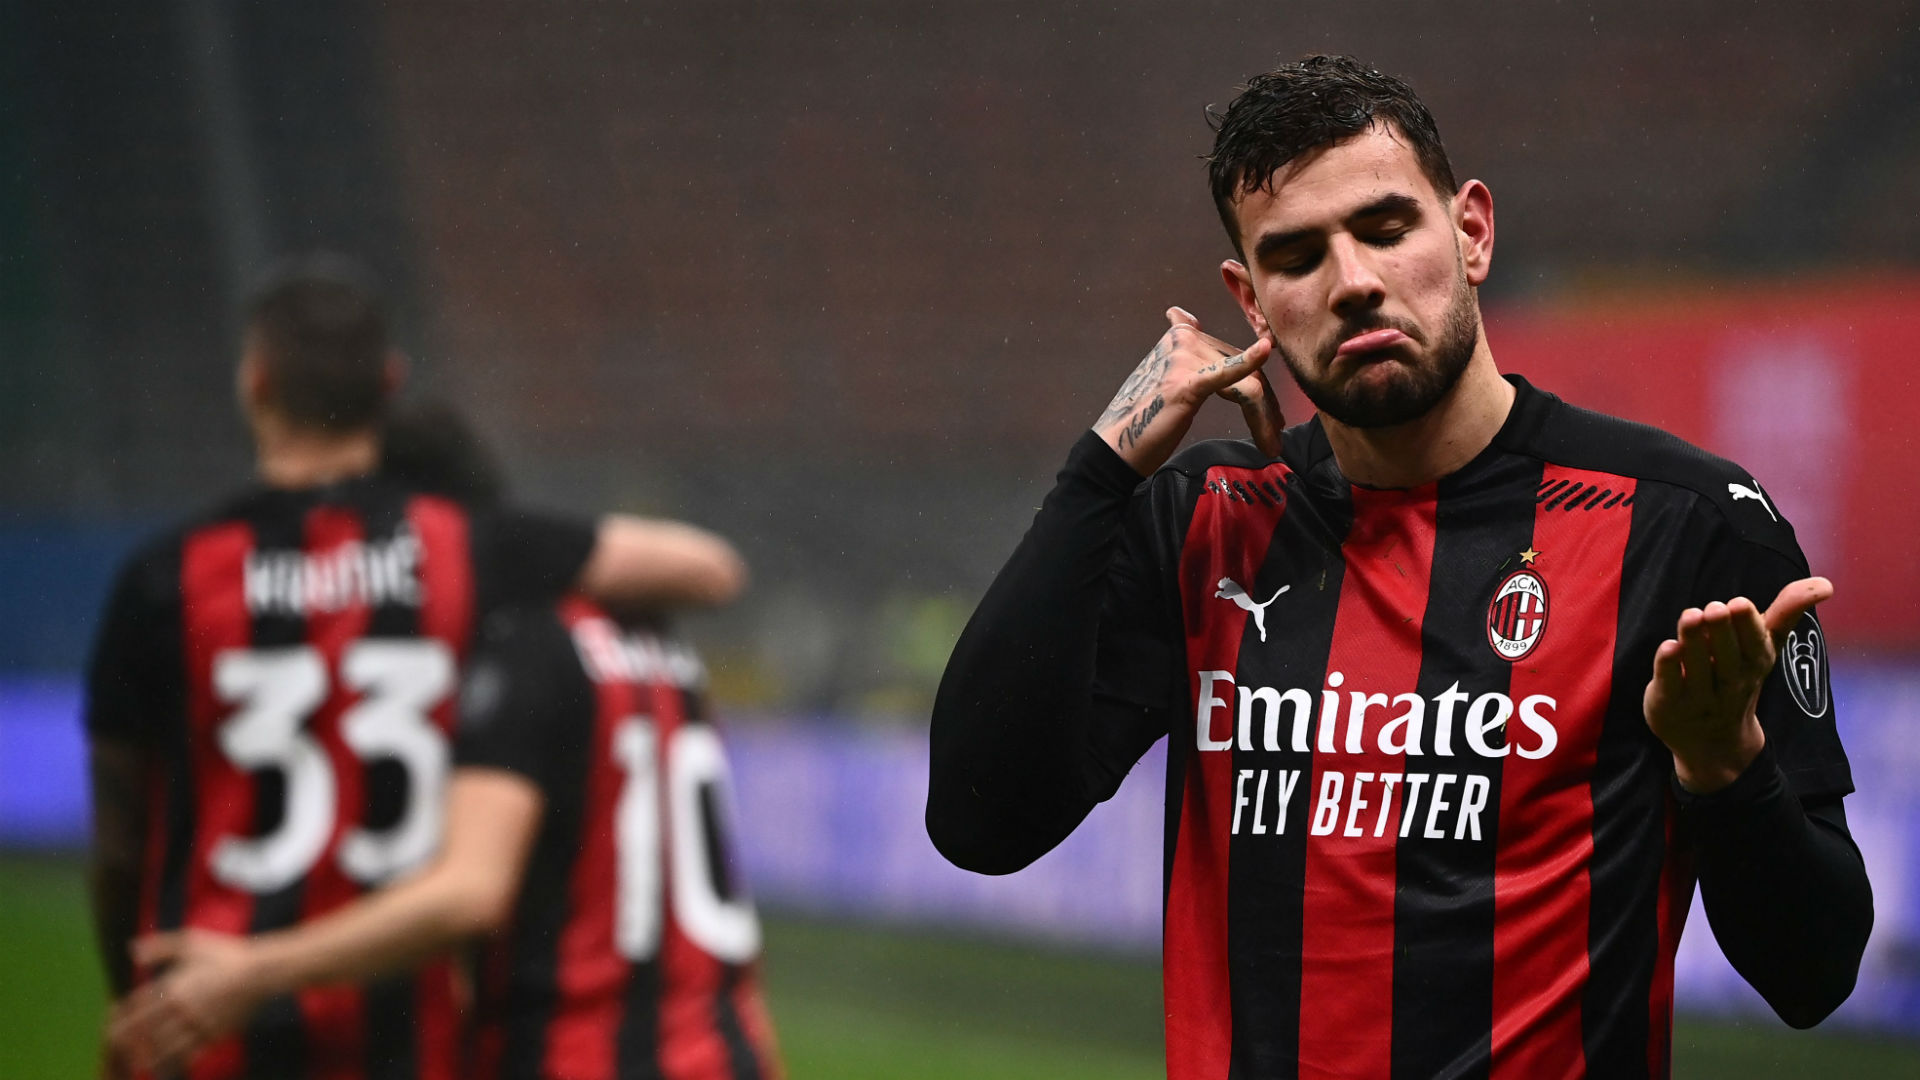 Milan 3-2 Lazio: Hernandez ensures Rossoneri end 2020 atop Serie A